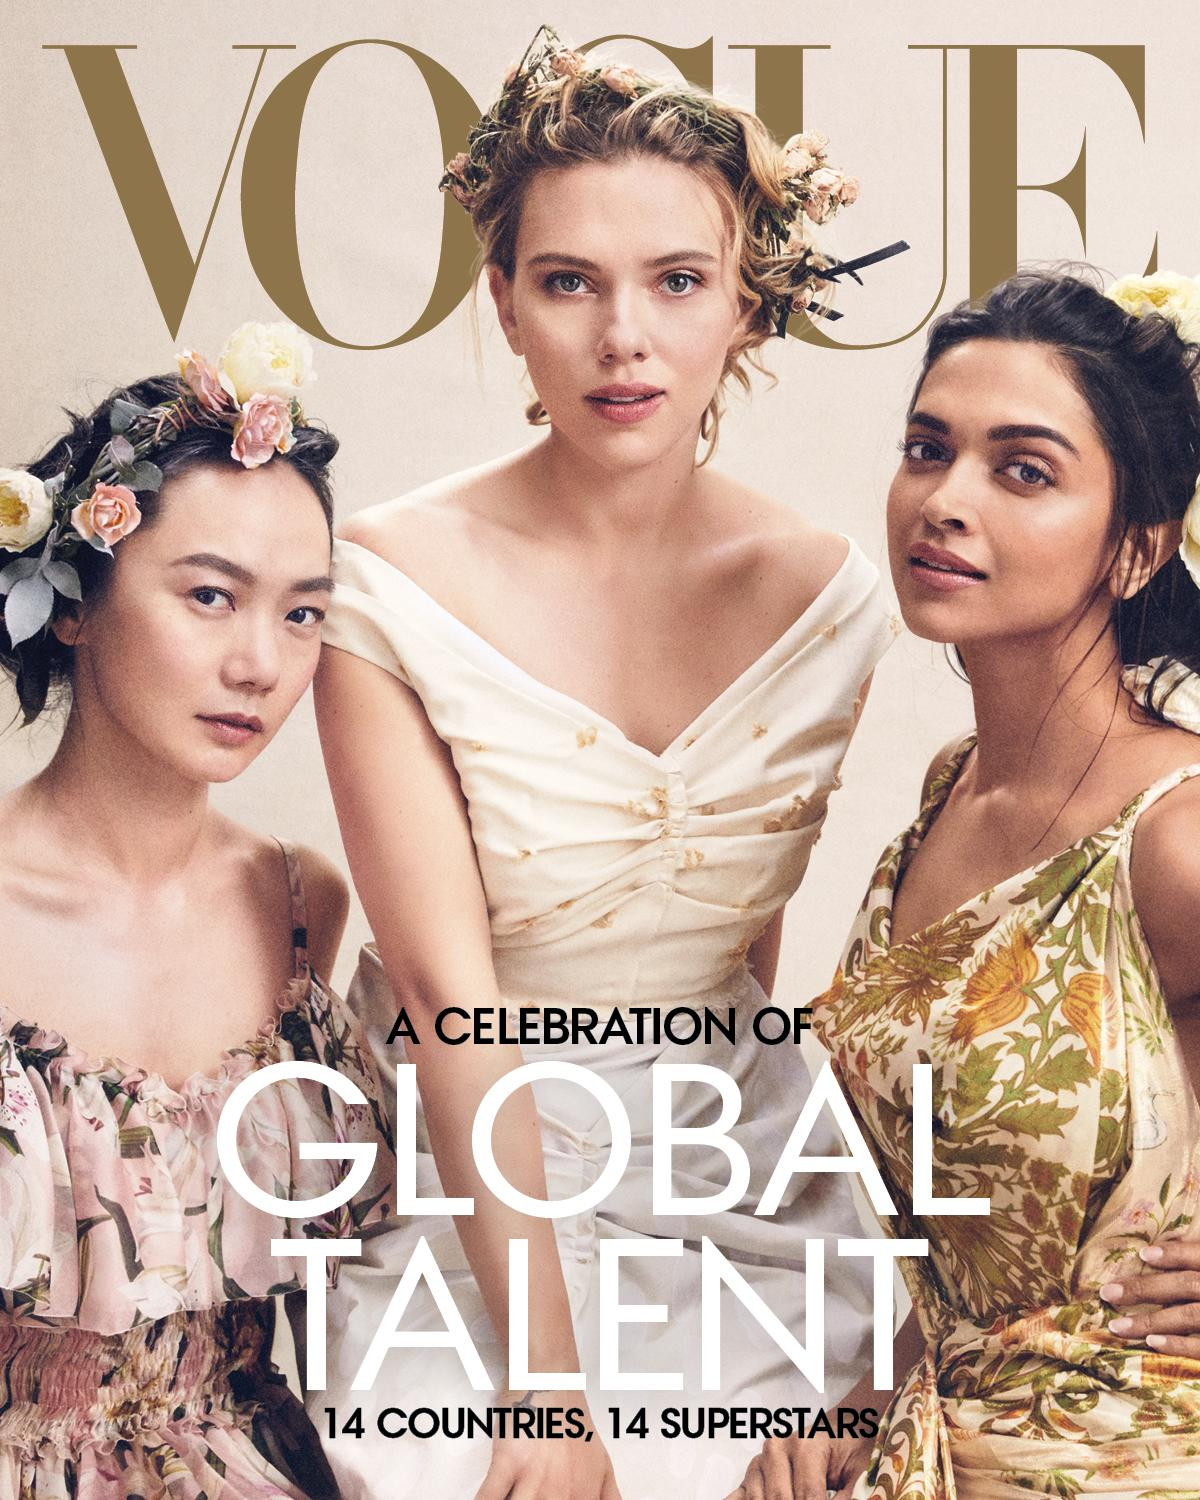 Critics Slam Vogue S Global Talent Cover Starring Scarlett Johansson They Still Place The White Woman In The Center